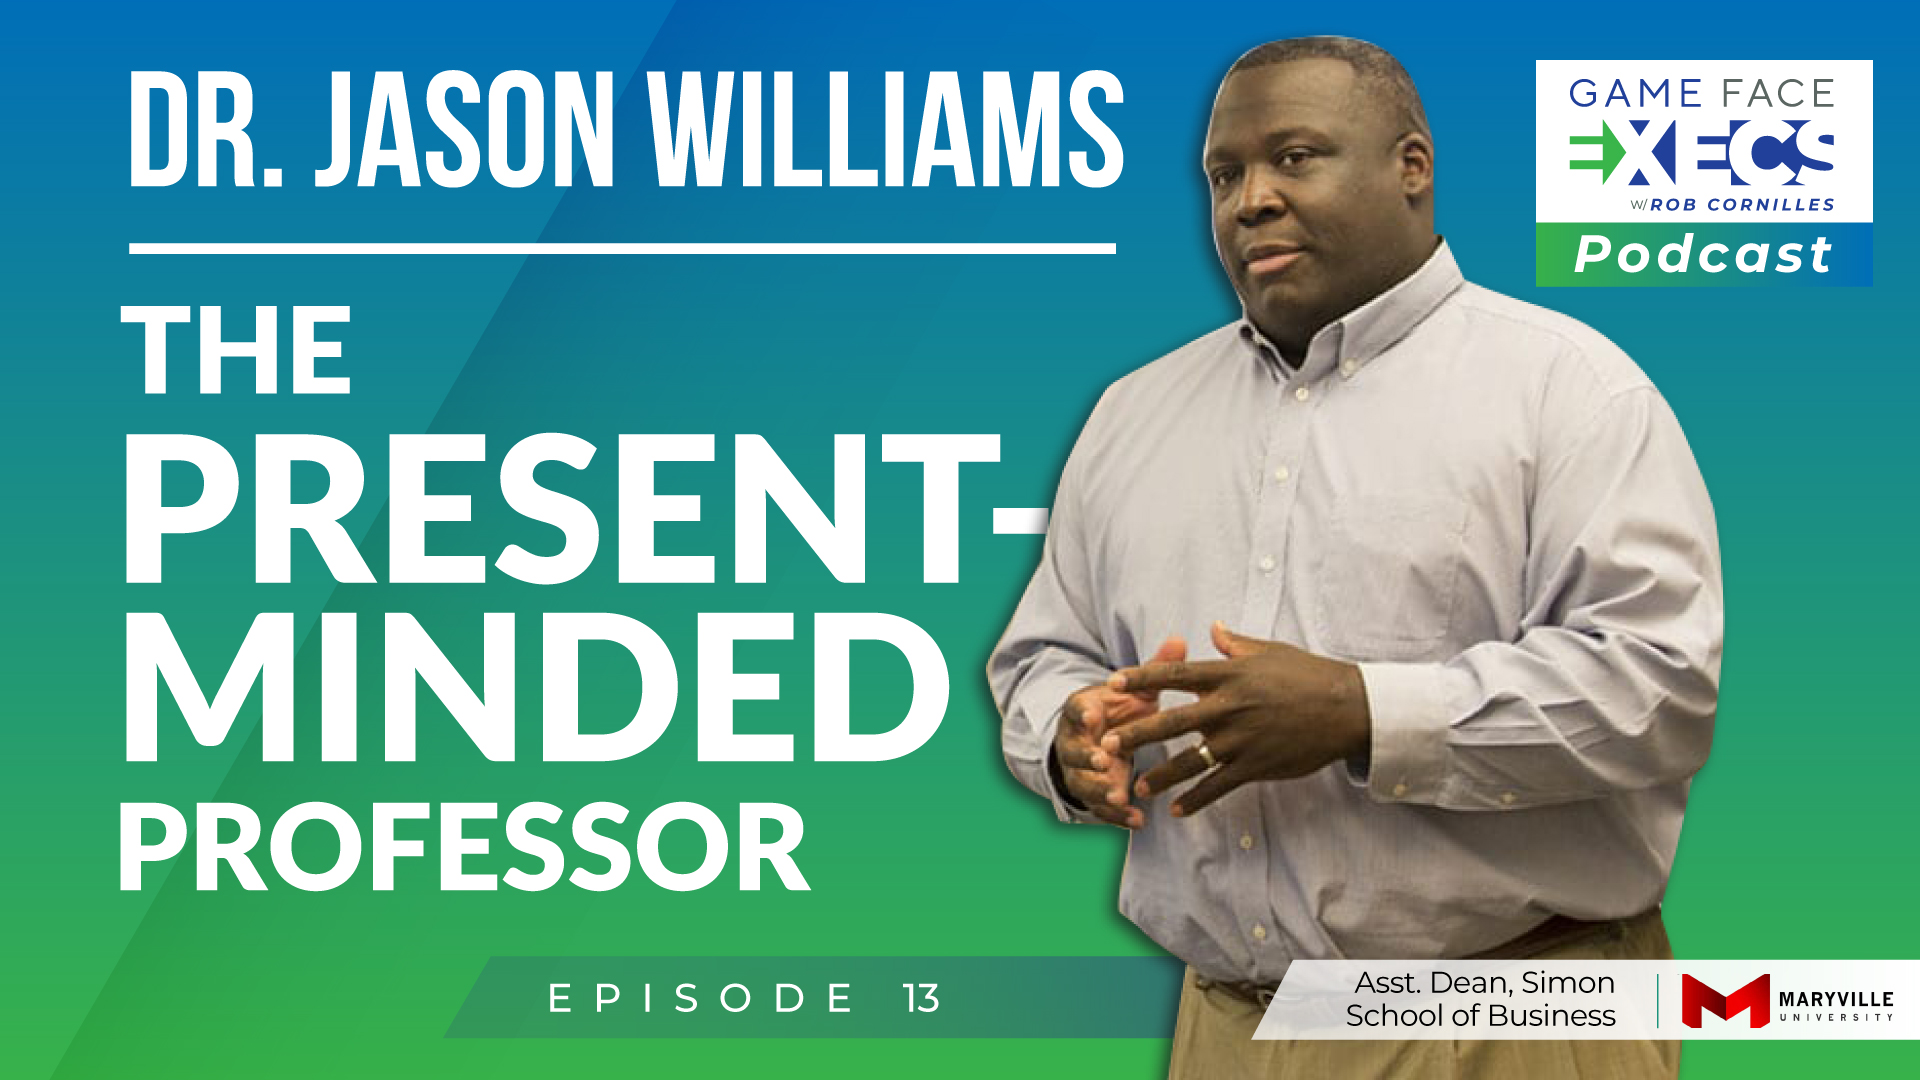 Game Face Execs podcast episode 12 with Jason Williams